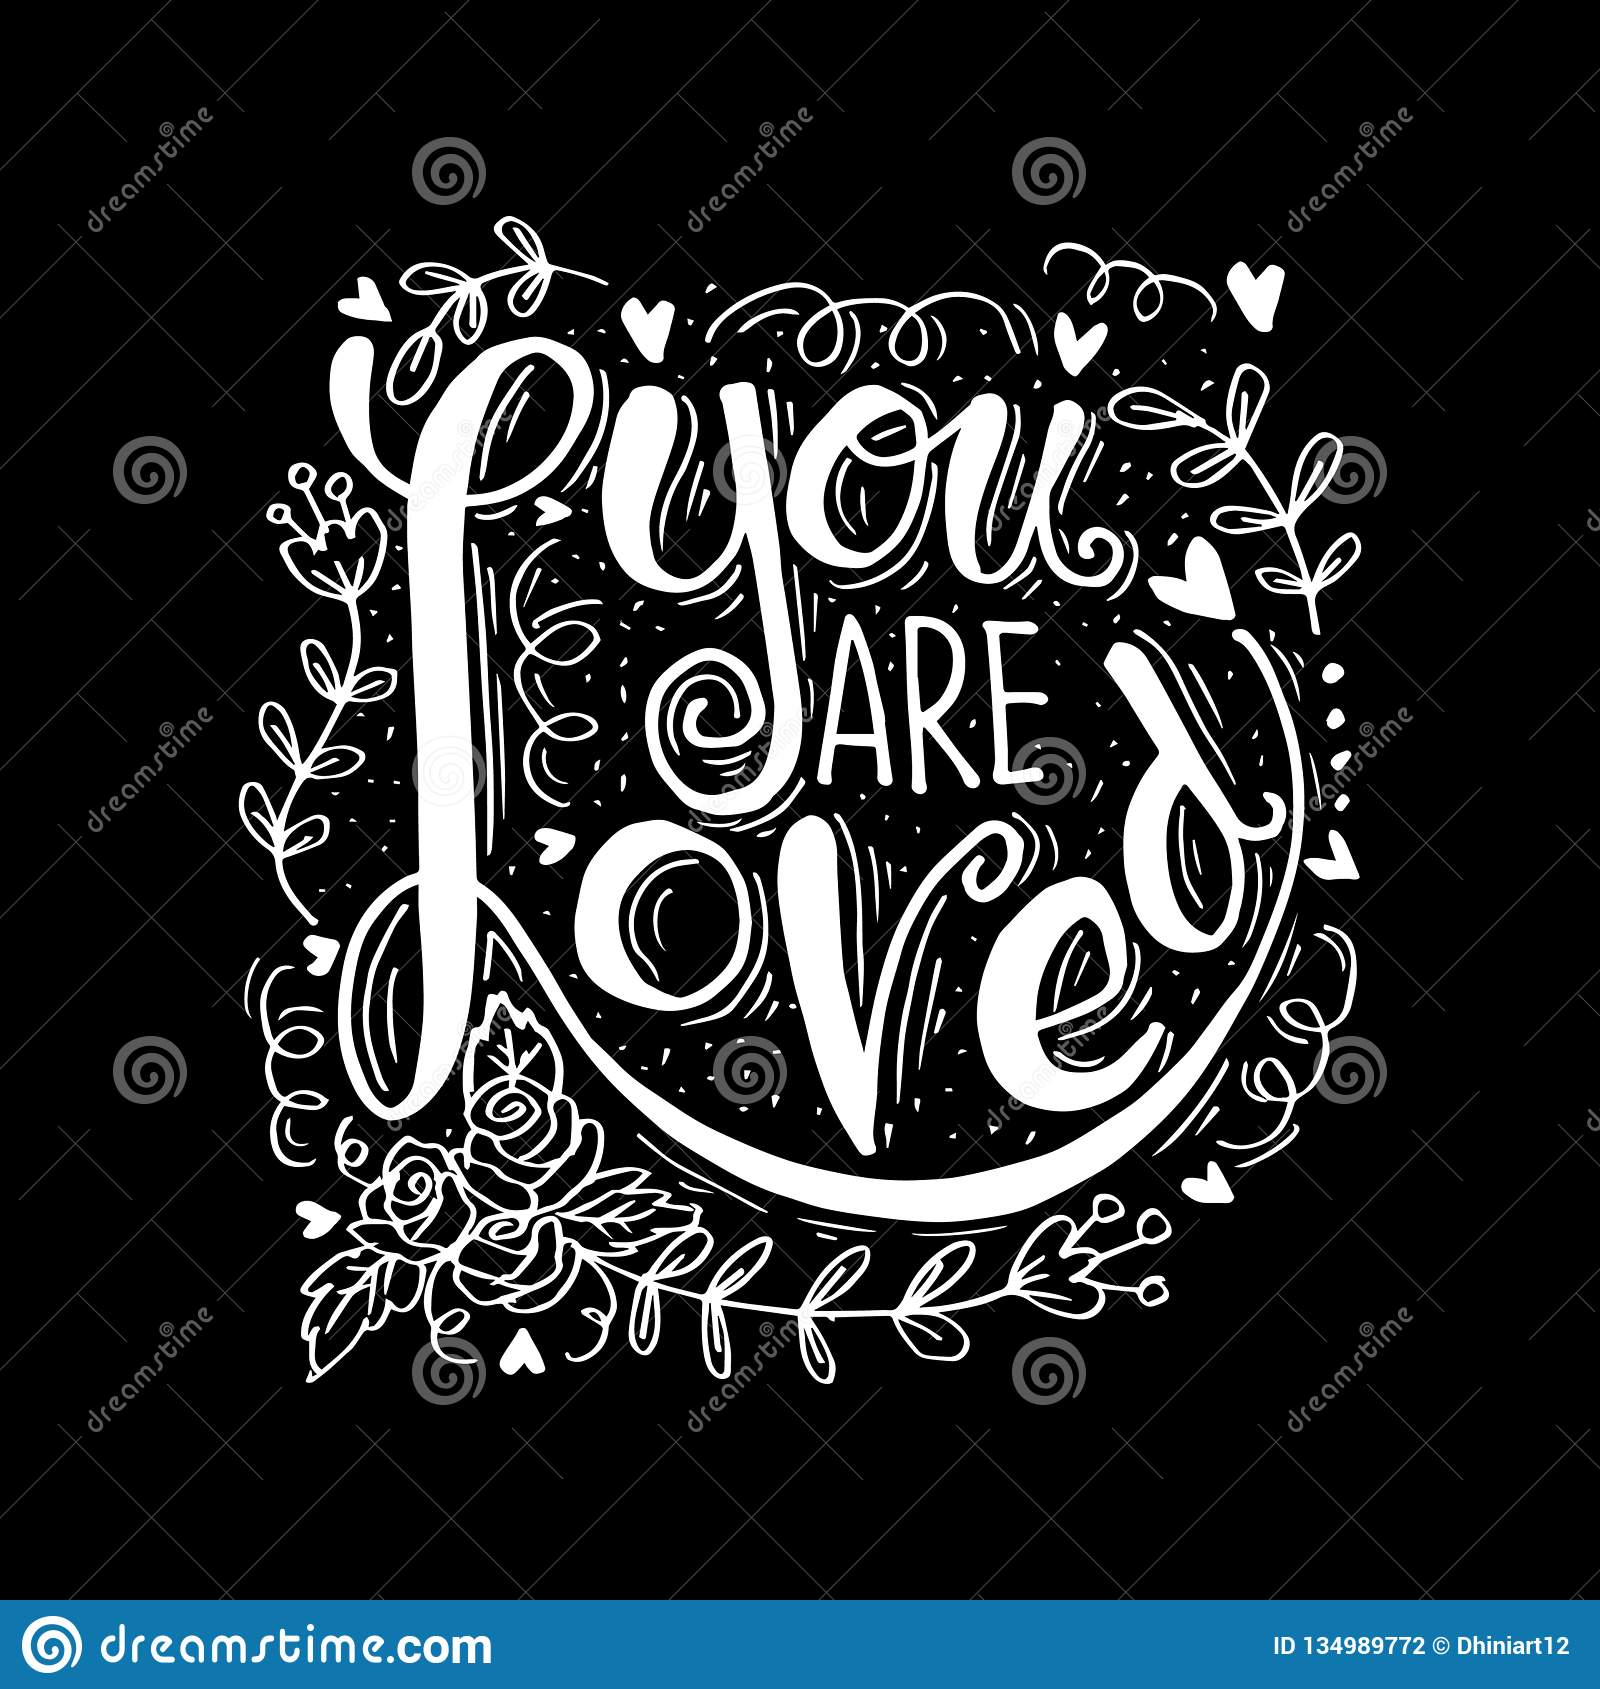 You are loved hand lettering.